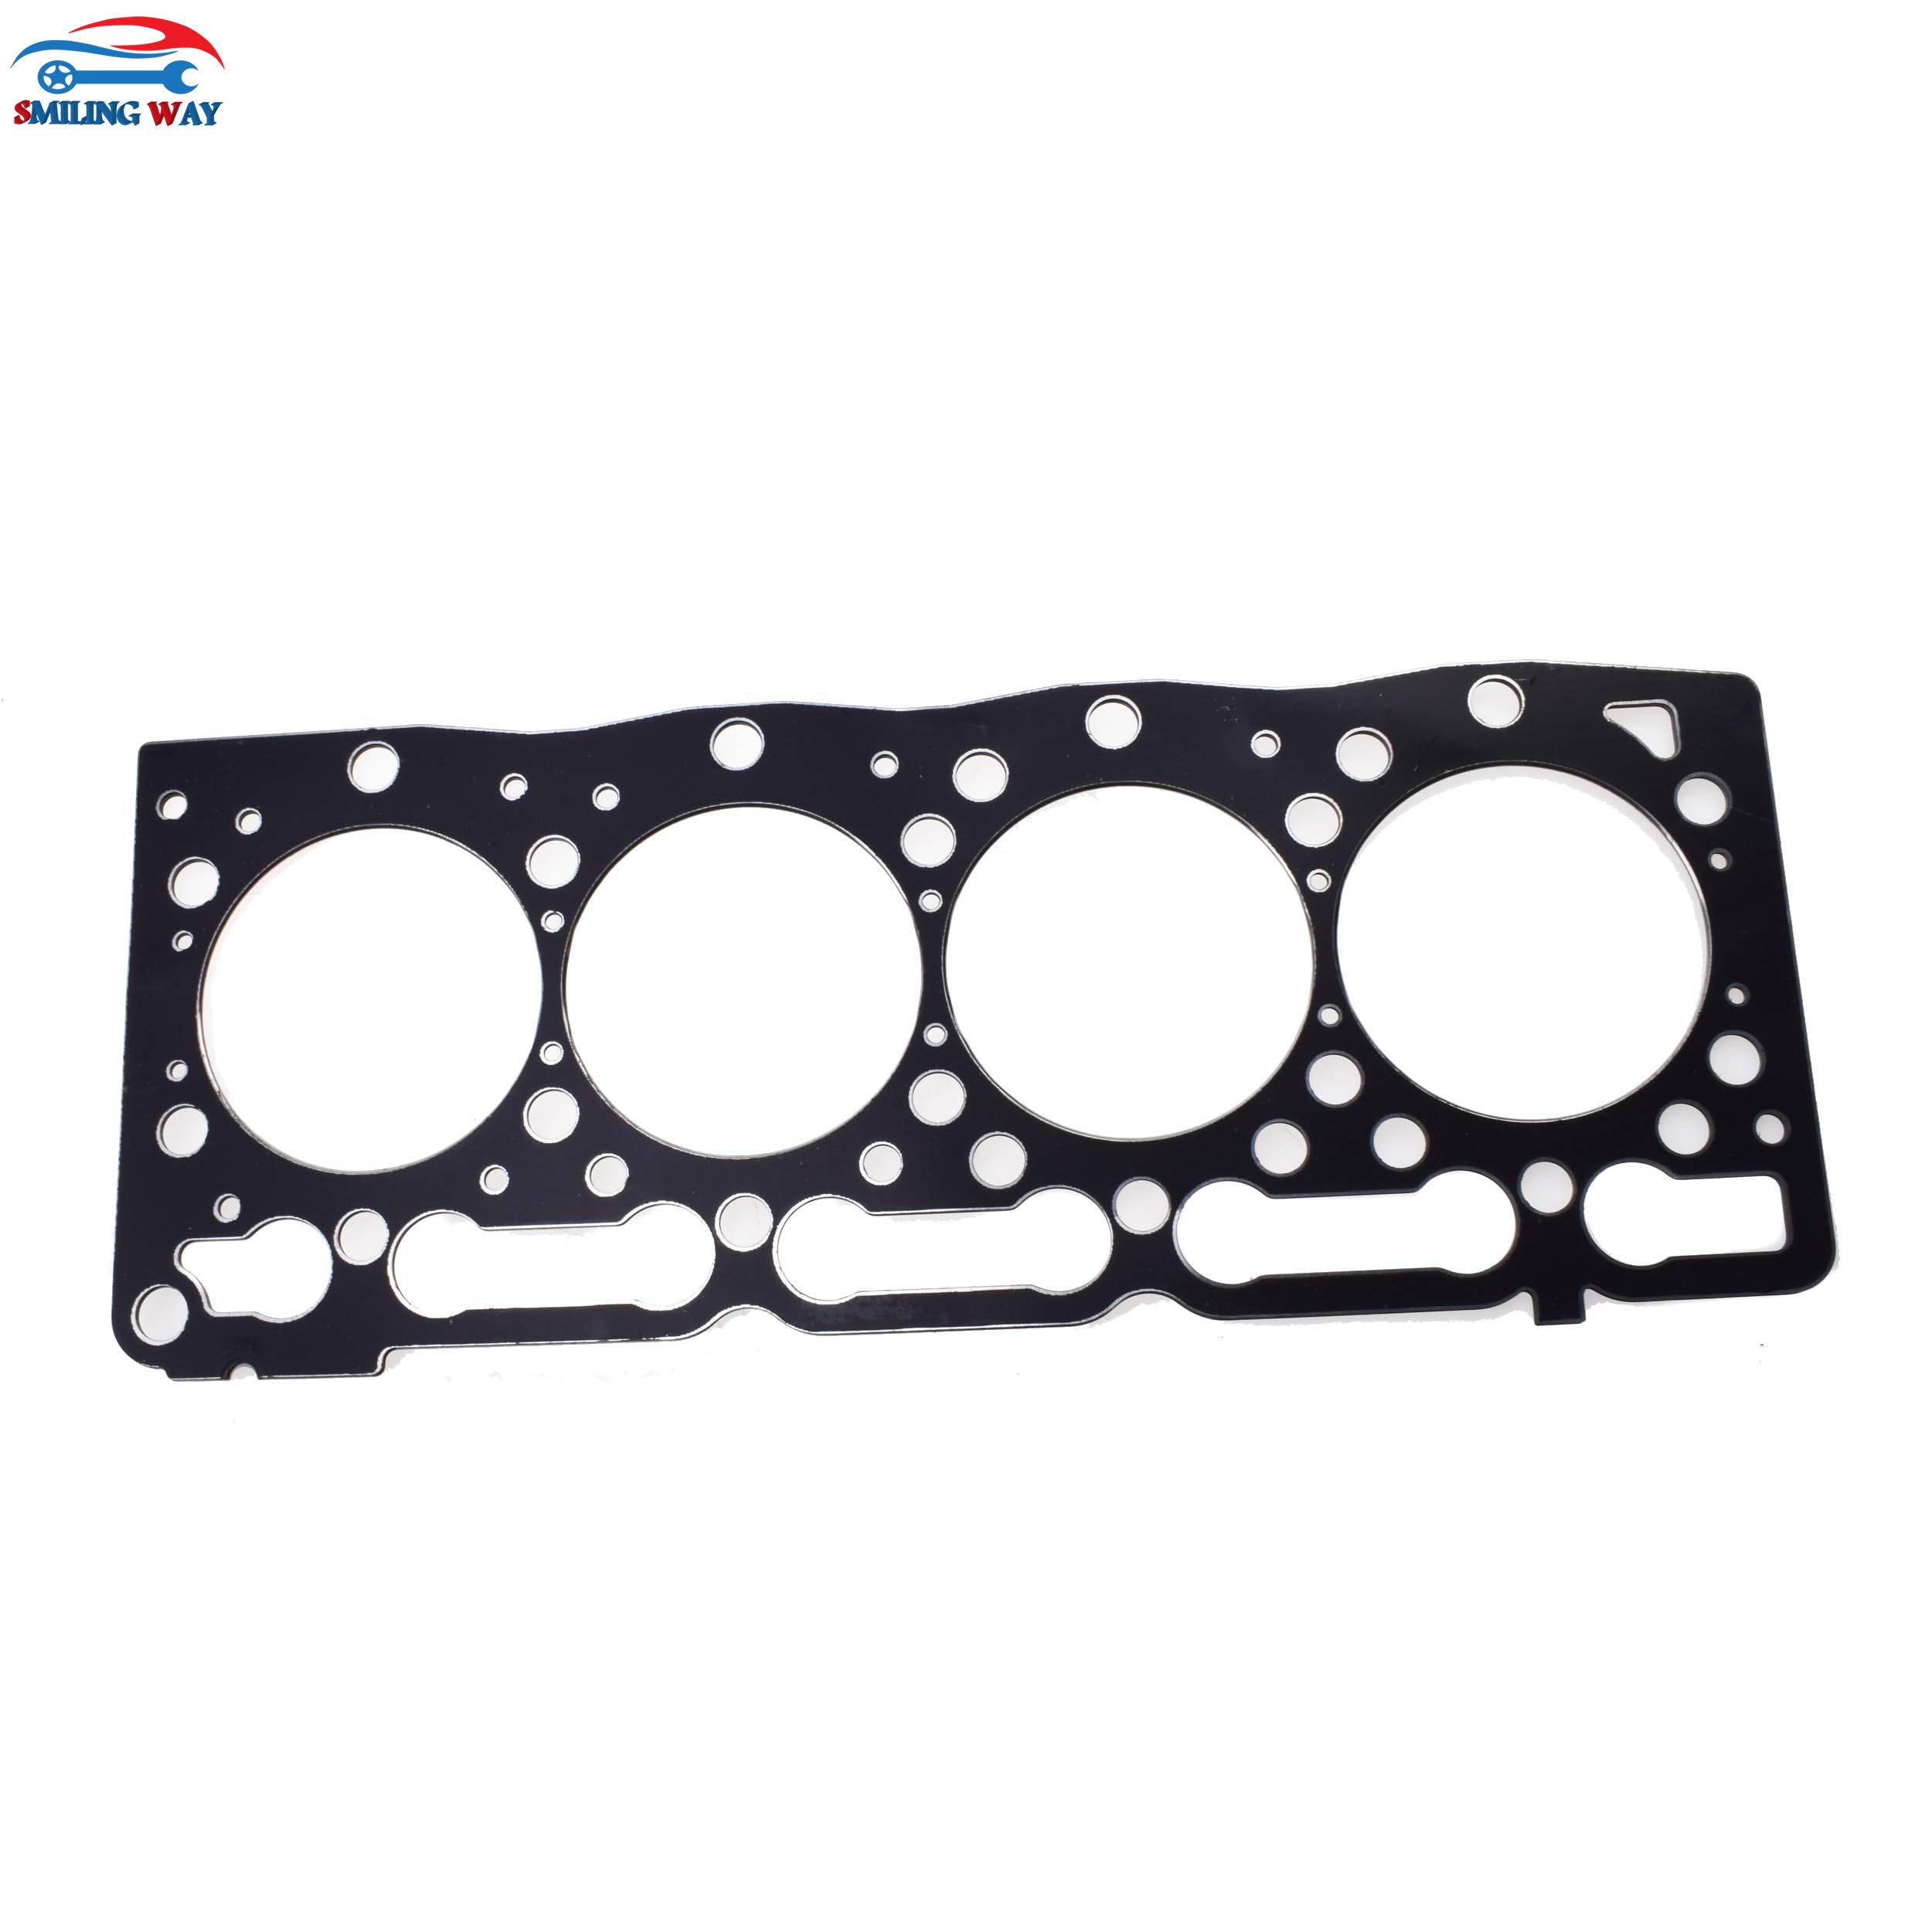 hight resolution of smiling way engine head gasket for kubota v1505 oe kbrv1712gh 16394 03310 in cyl head valve cover gasket from automobiles motorcycles on